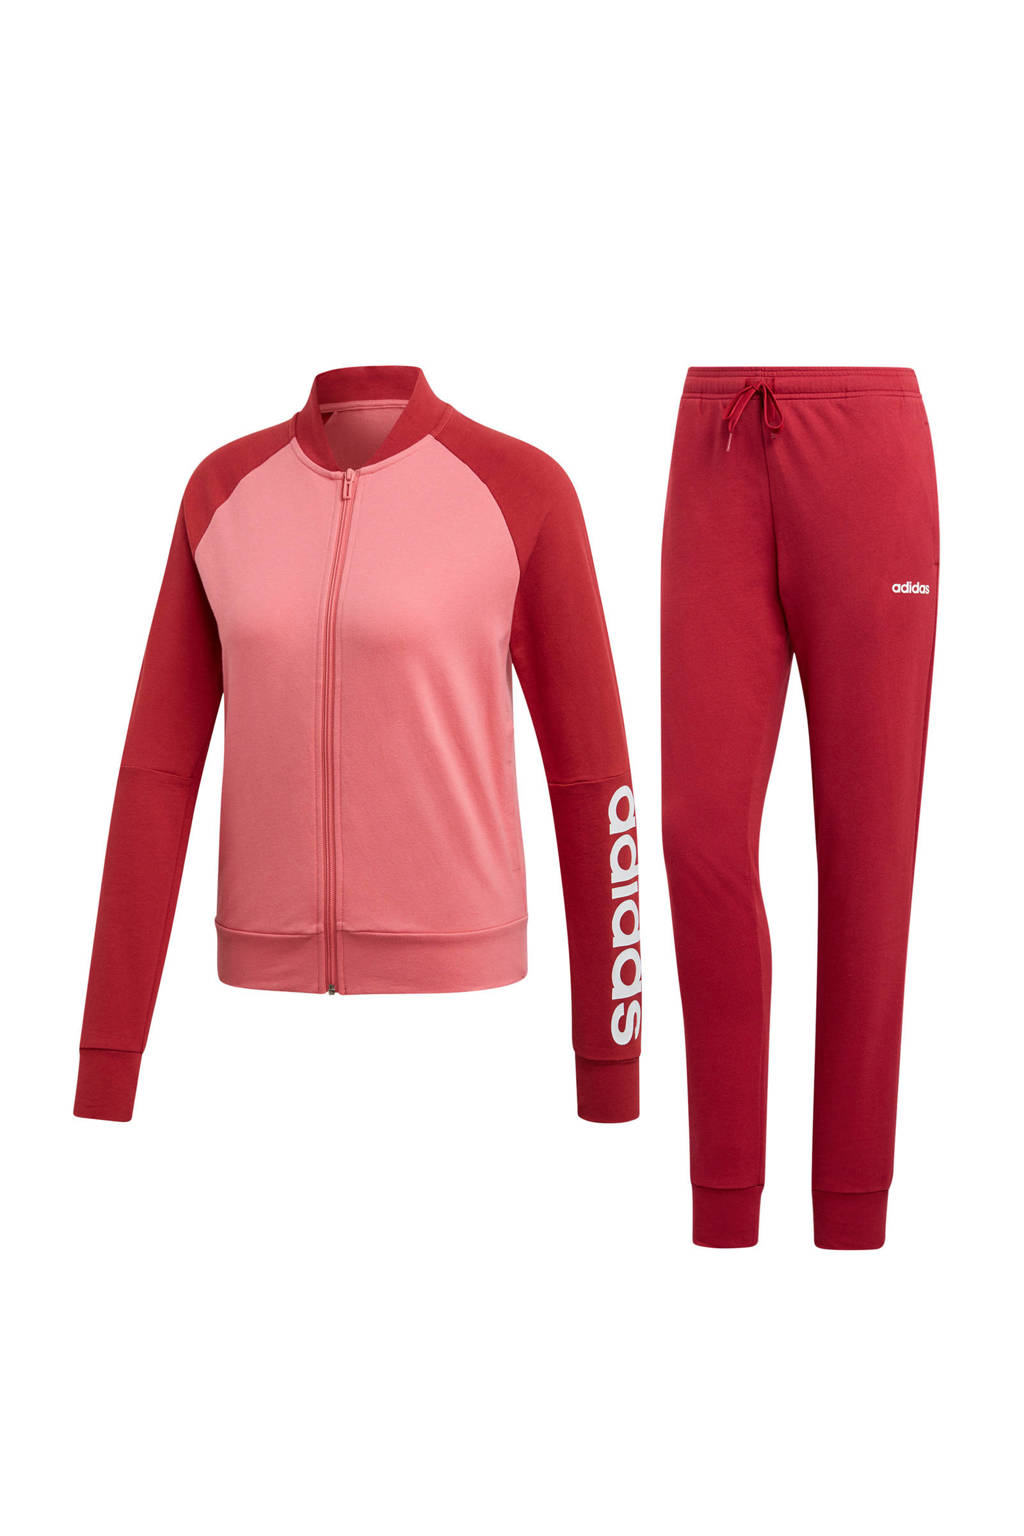 adidas performance trainingspak roze/rood, Roze/rood